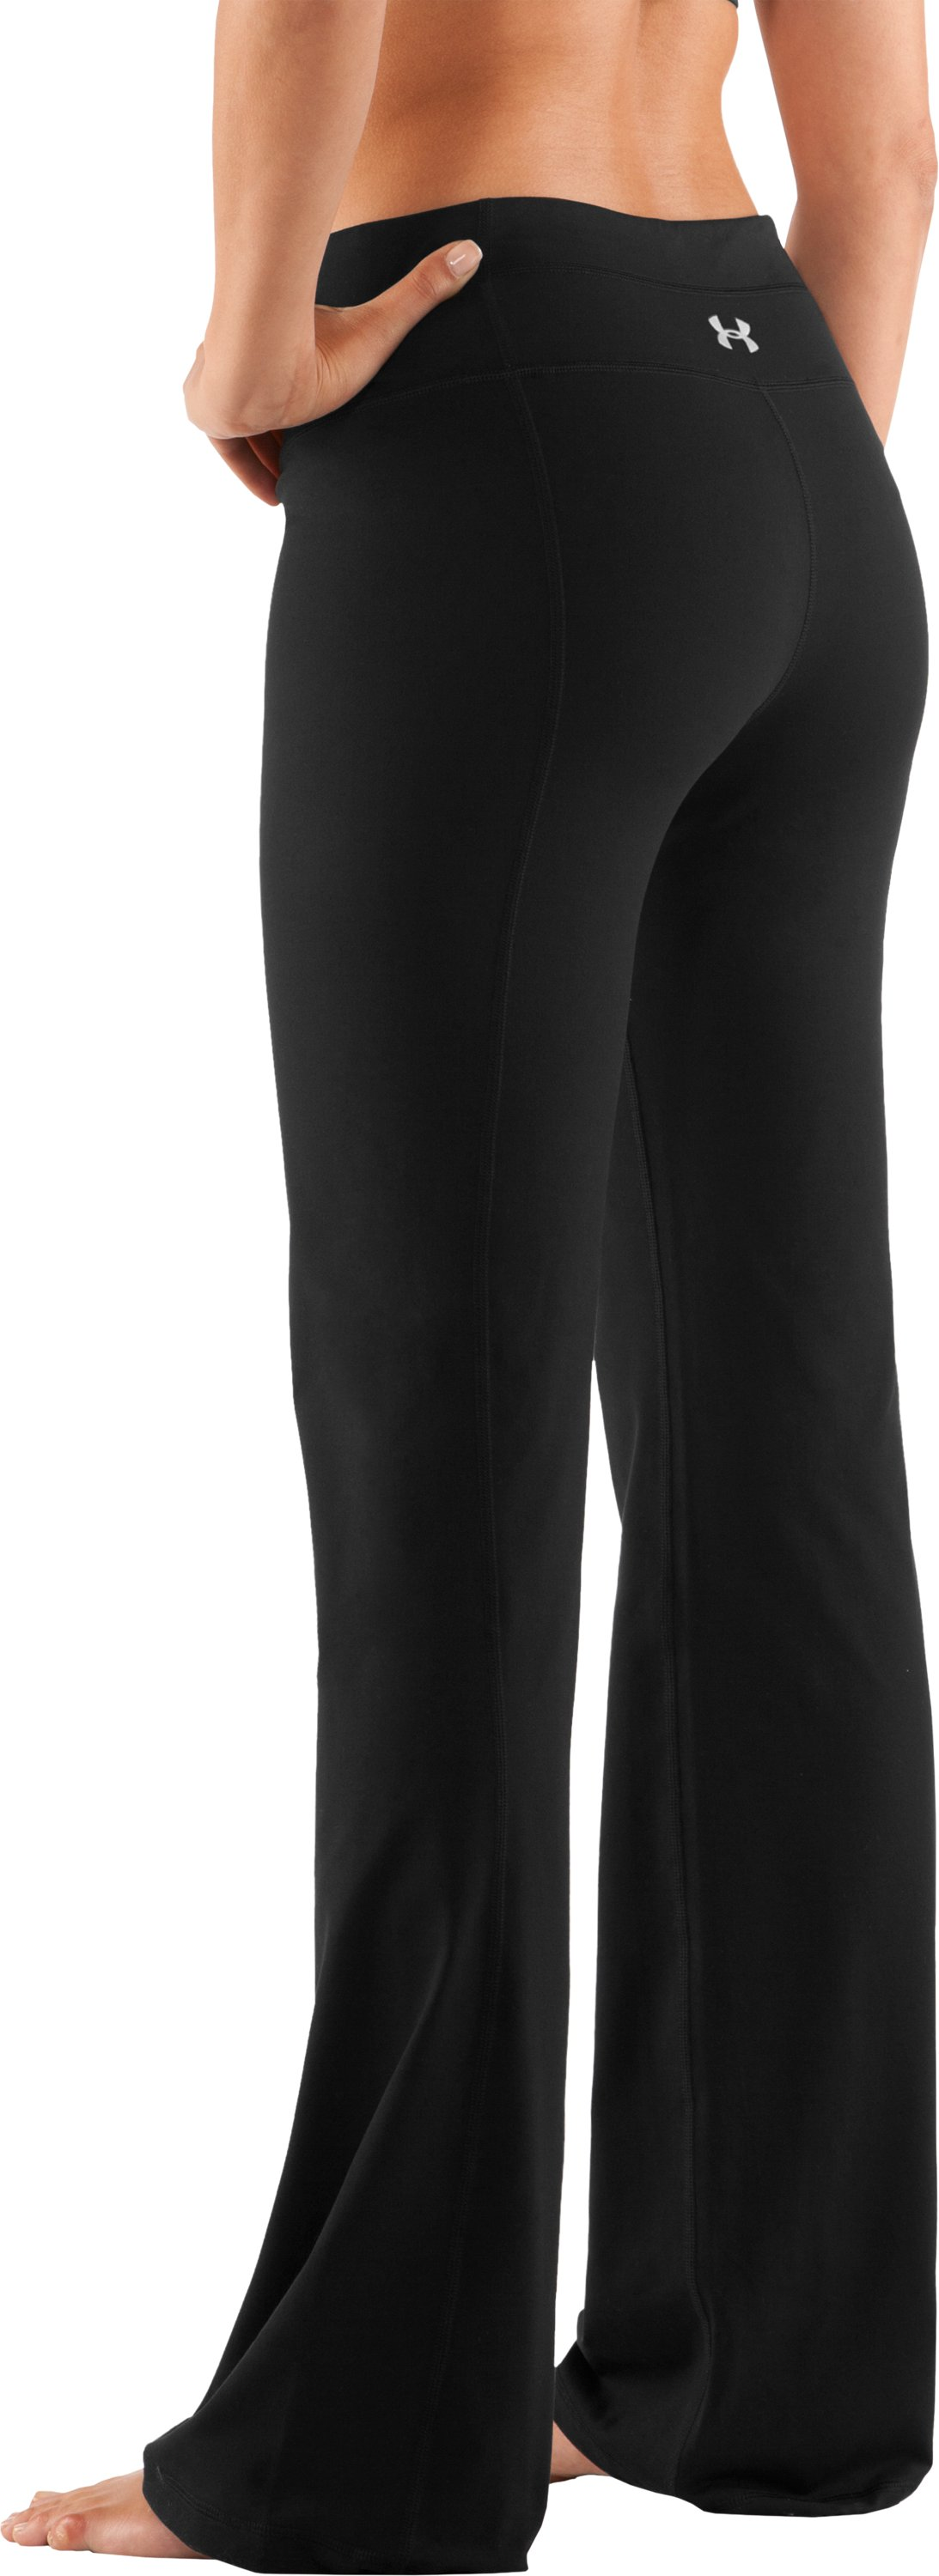 "Women's UA Perfect Pant - 33.5"", Black ,"